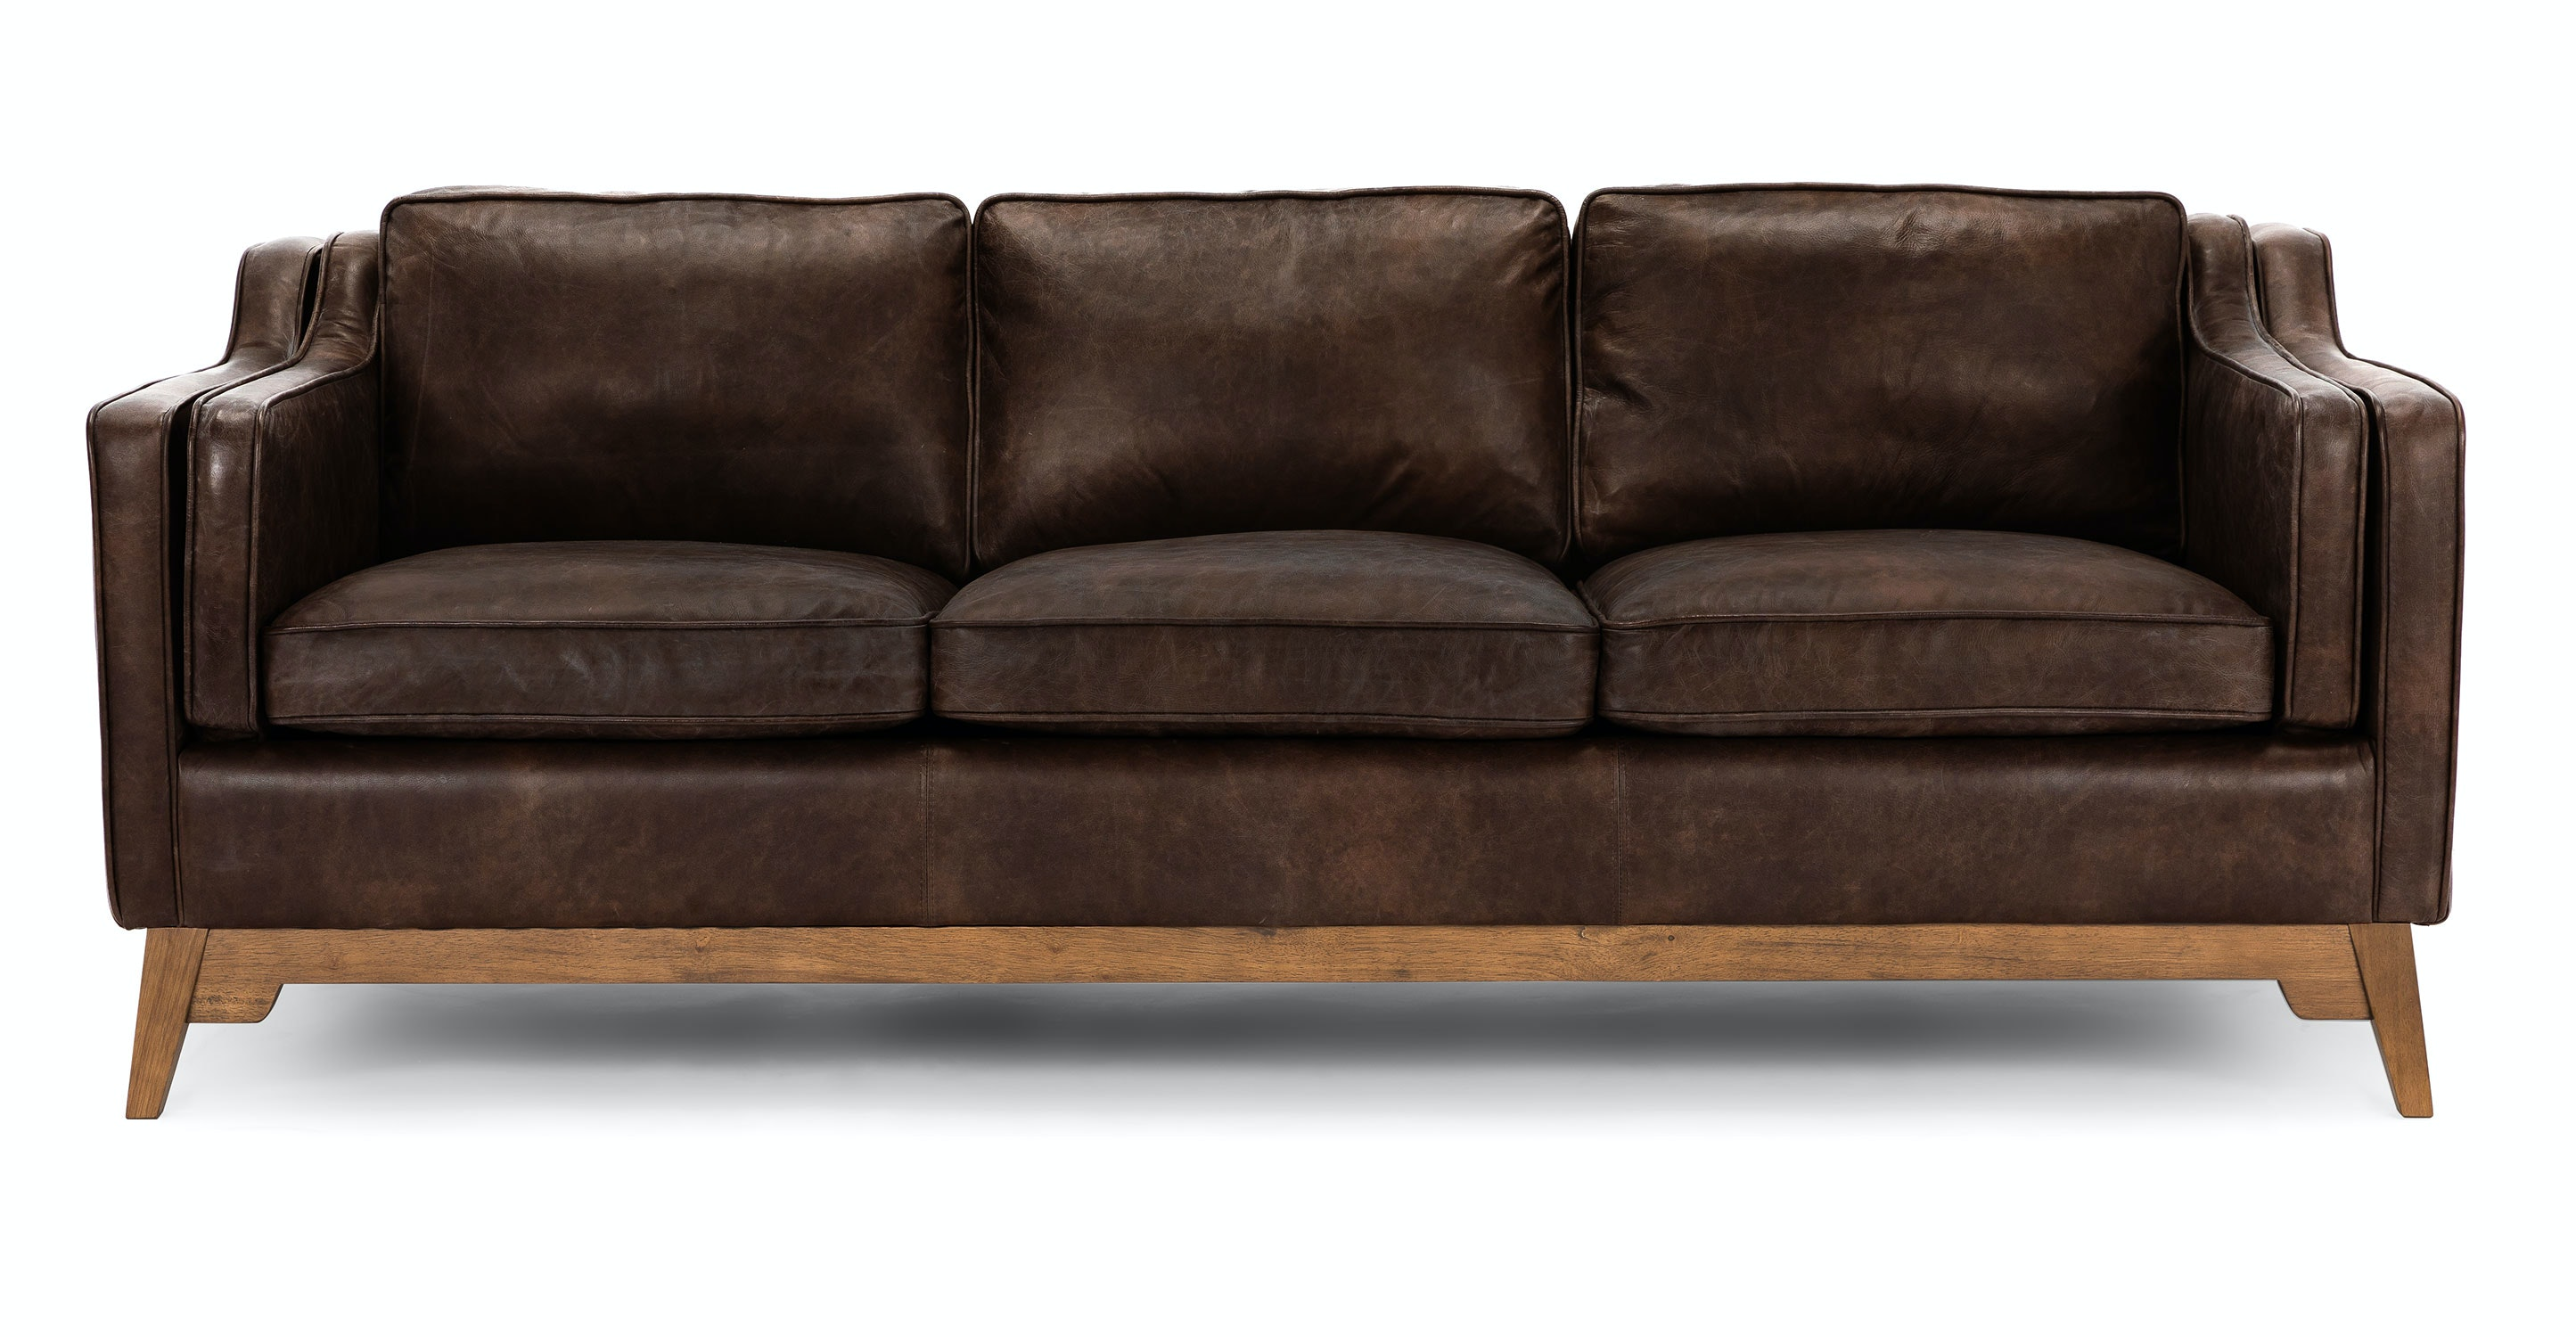 Brown Leather Sofa Bed Teachfamiliesorg